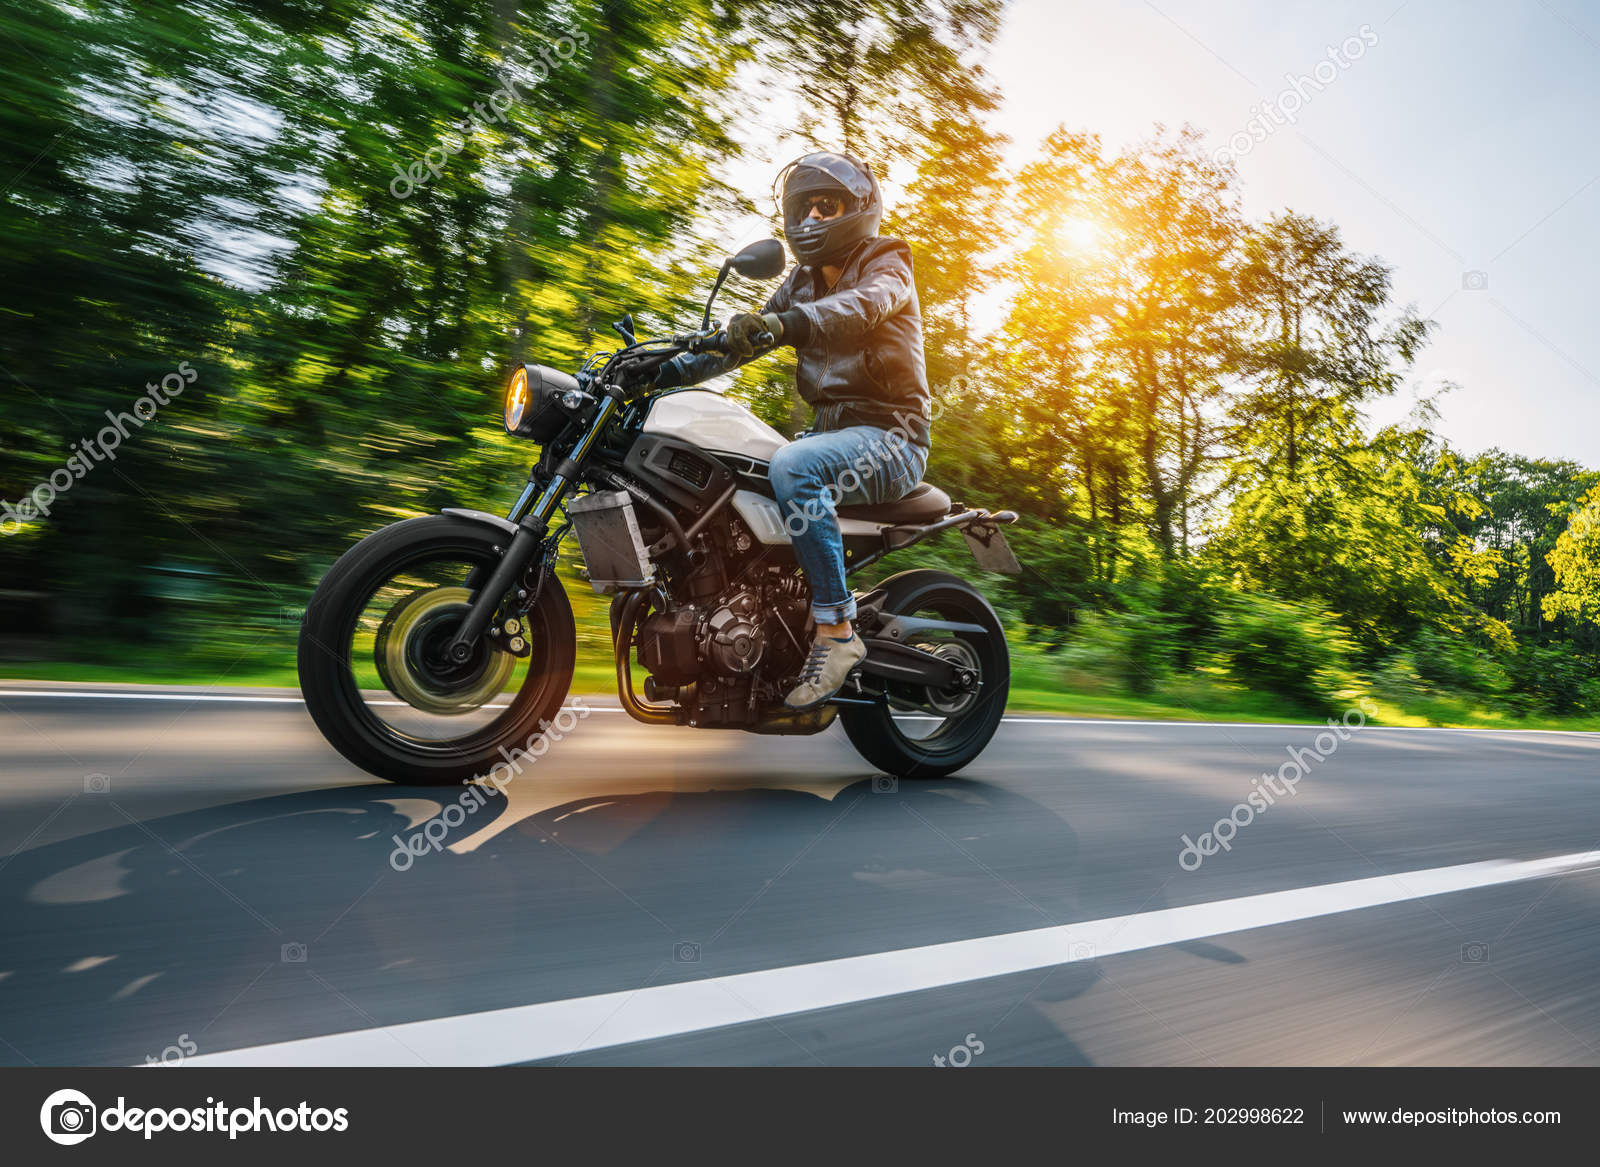 Modern Scrambler Motorbike Forest Road Riding Having Fun Driving Empty Stock Photo